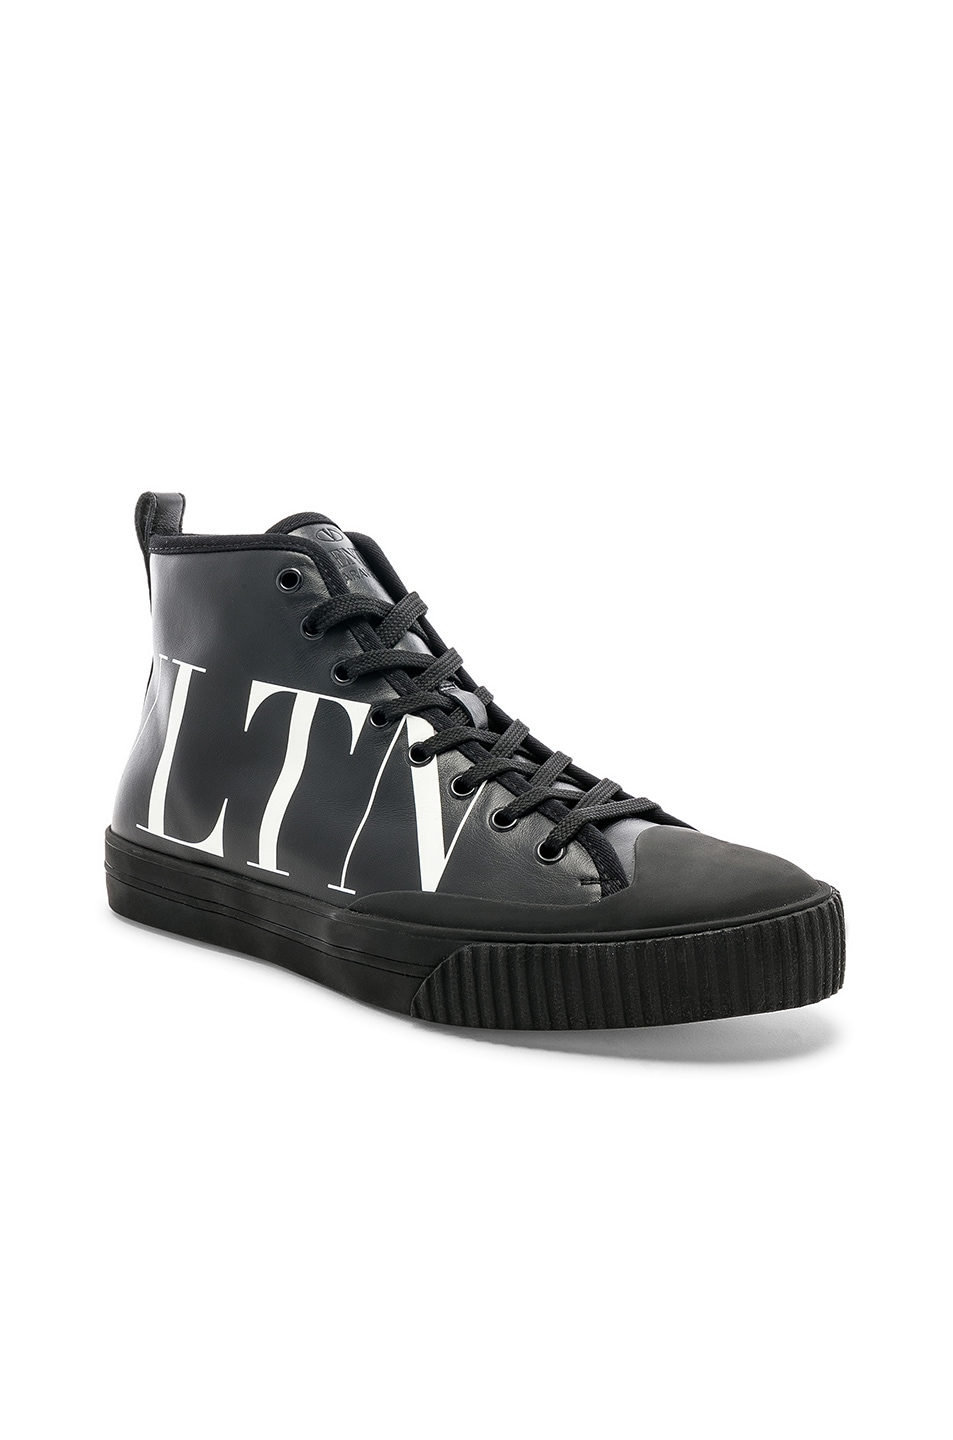 ValentinoLeather VLTN Hi Top Sneakers in . D06uMCWSBf